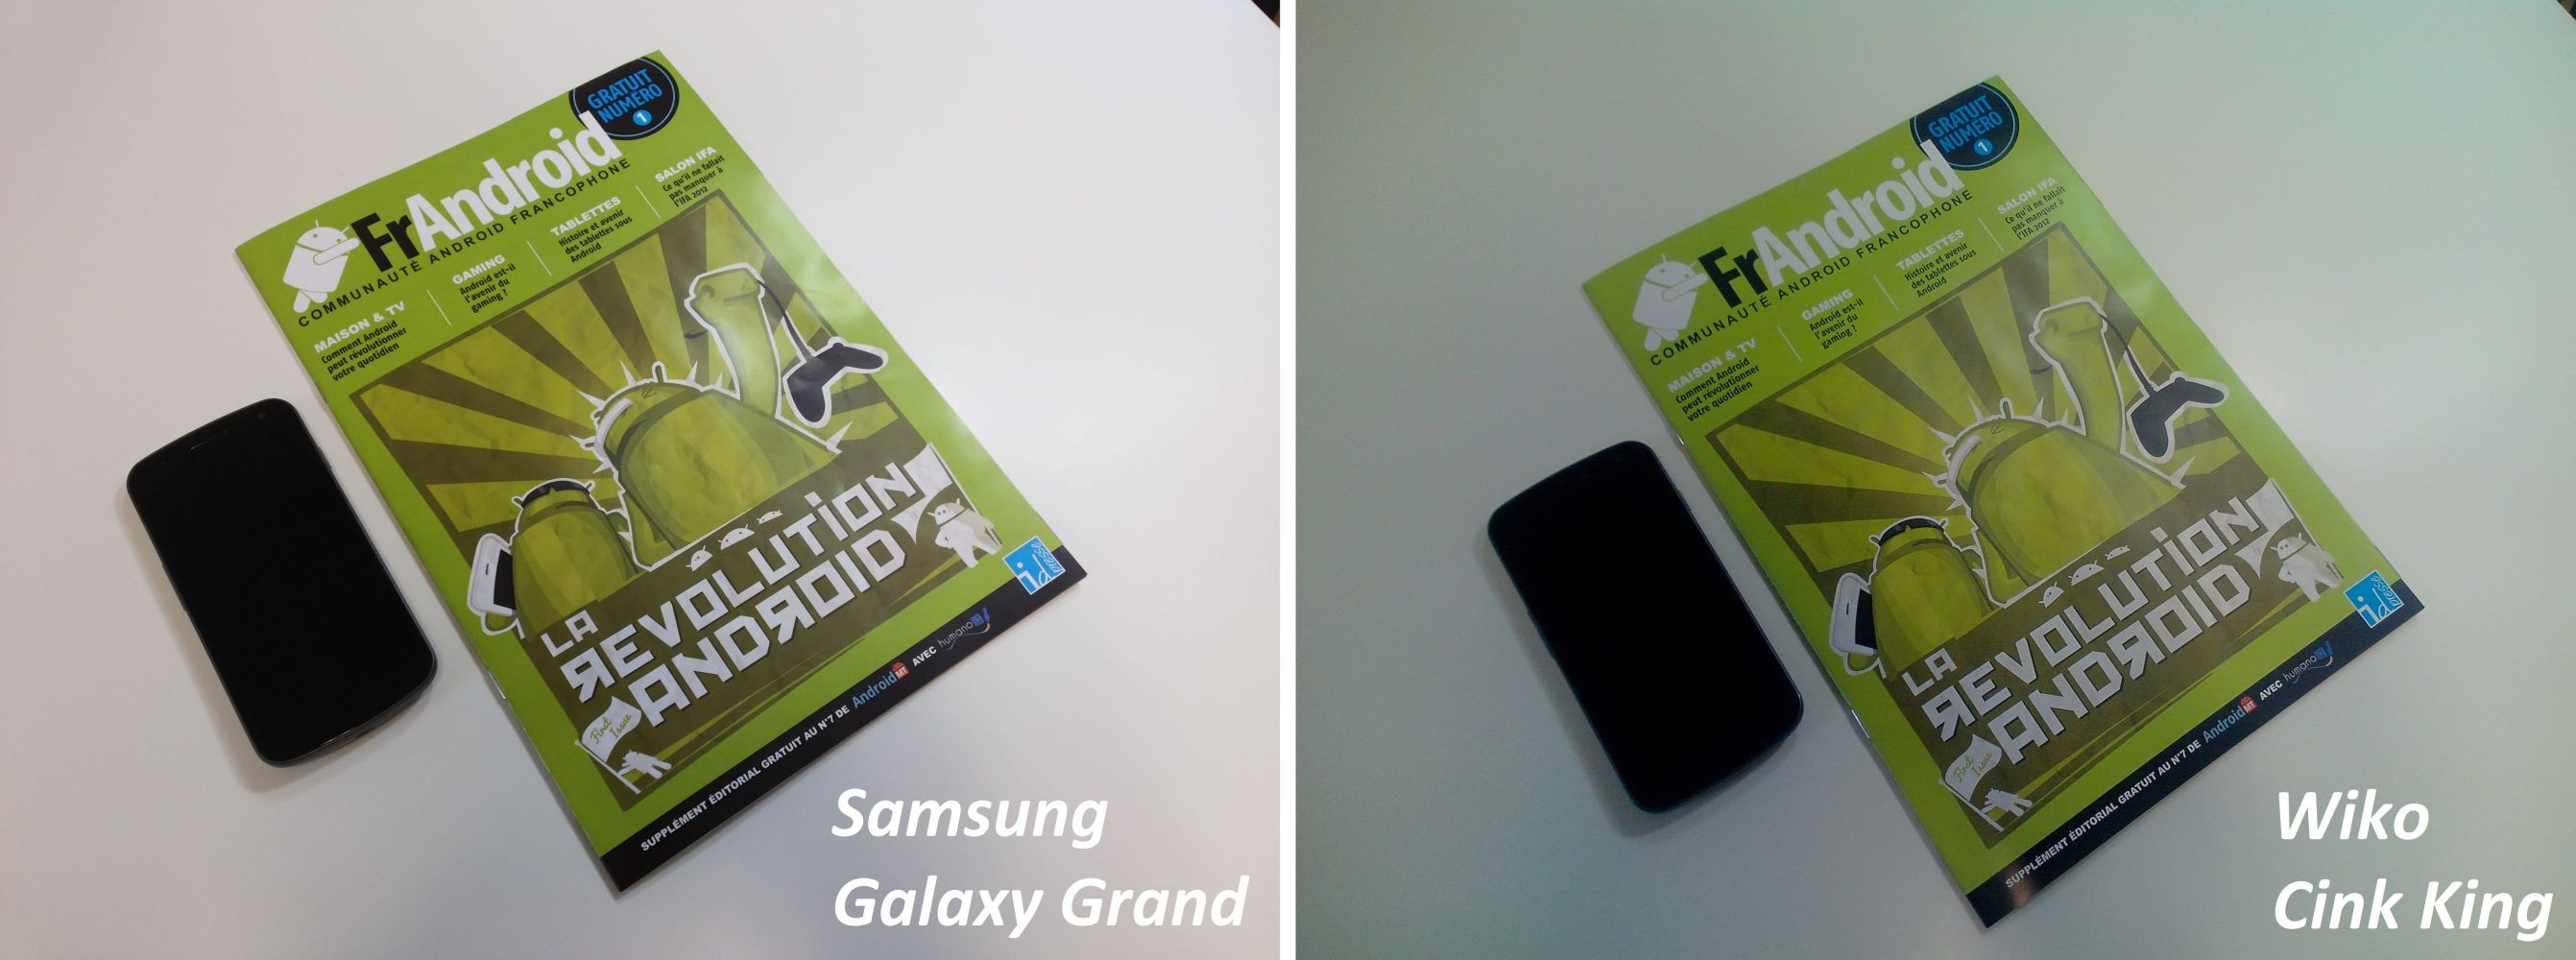 android-comparaison-qualité-photo-samsung-galaxy-grand-wiko-cink-king